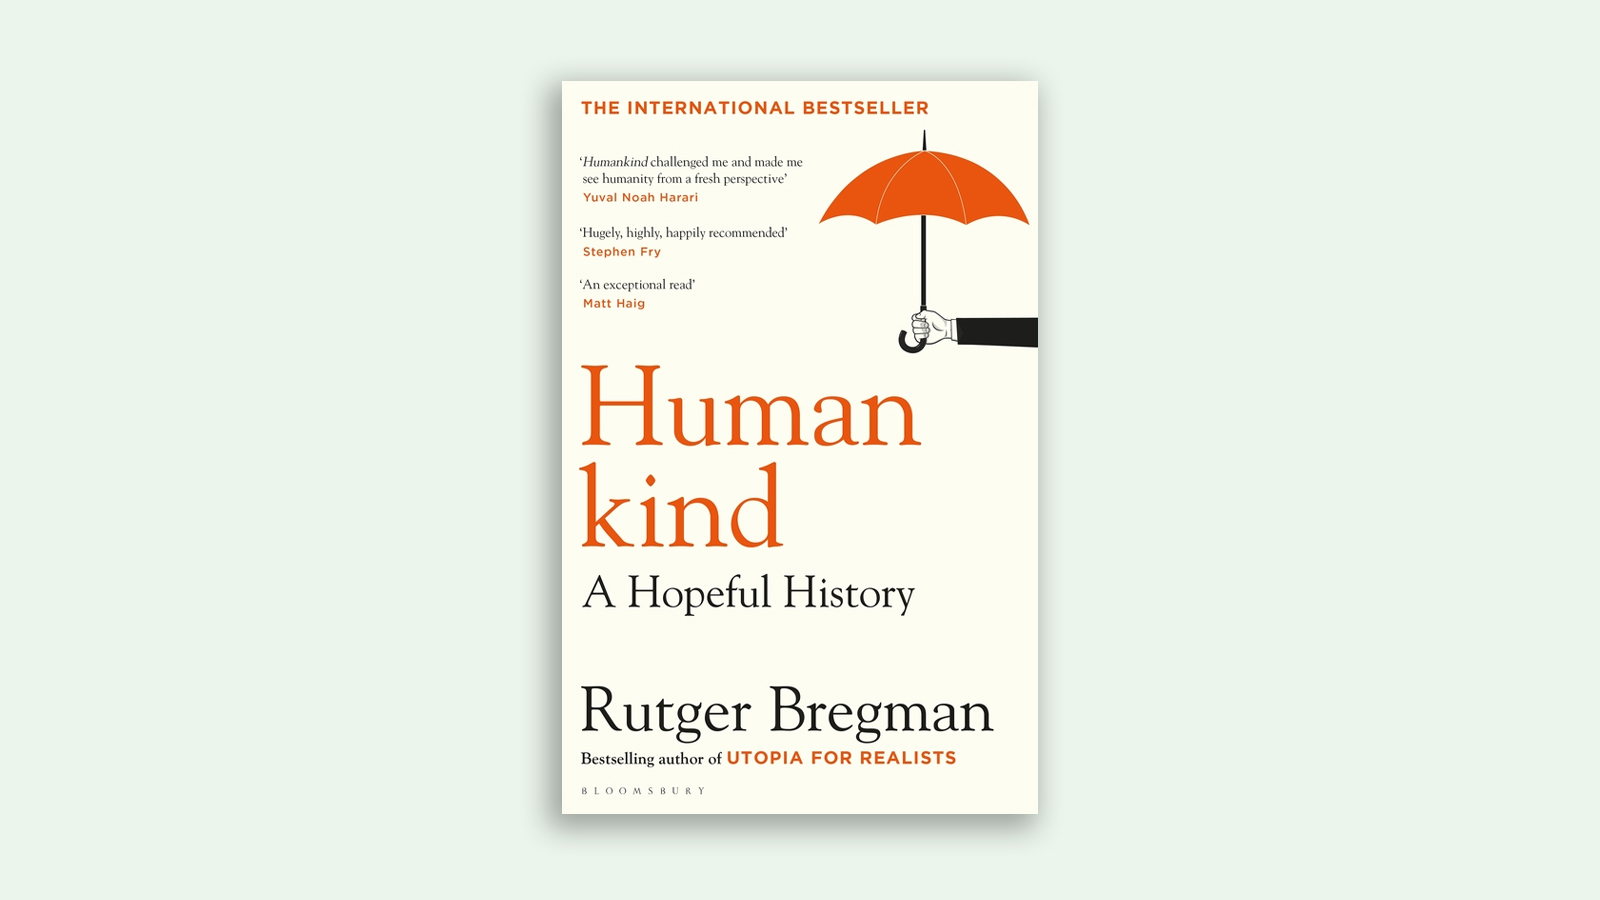 The book cover for Humankind by Rutger Bregman